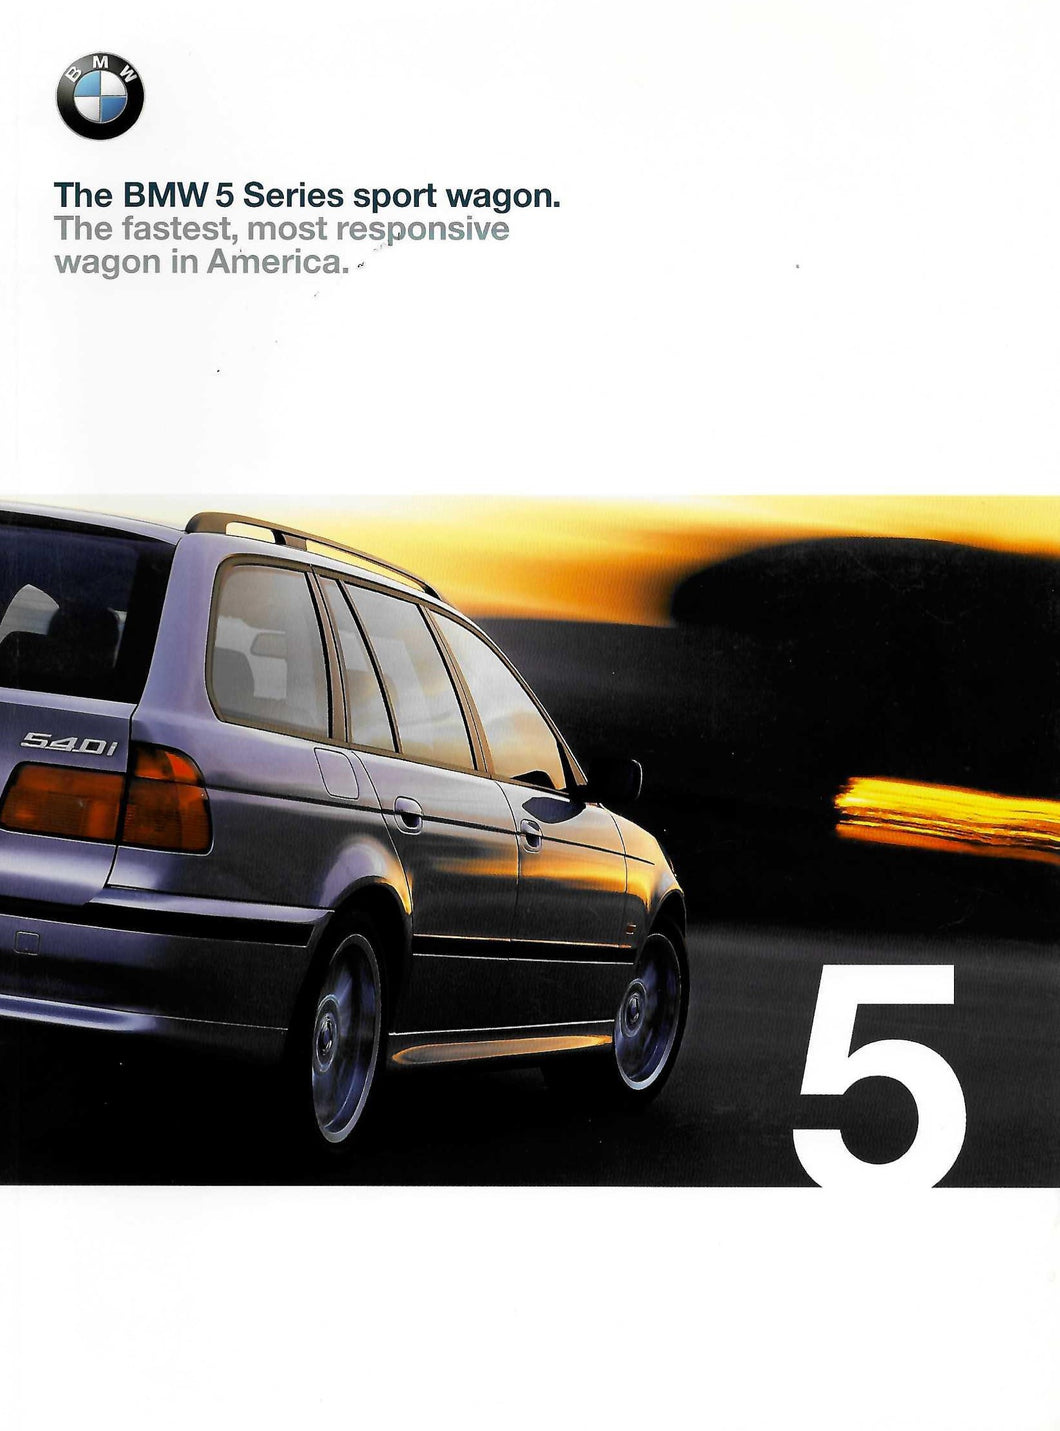 Brochure - BMW 5 Series Sports Wagon. The fastest , most responsive wagon in America.